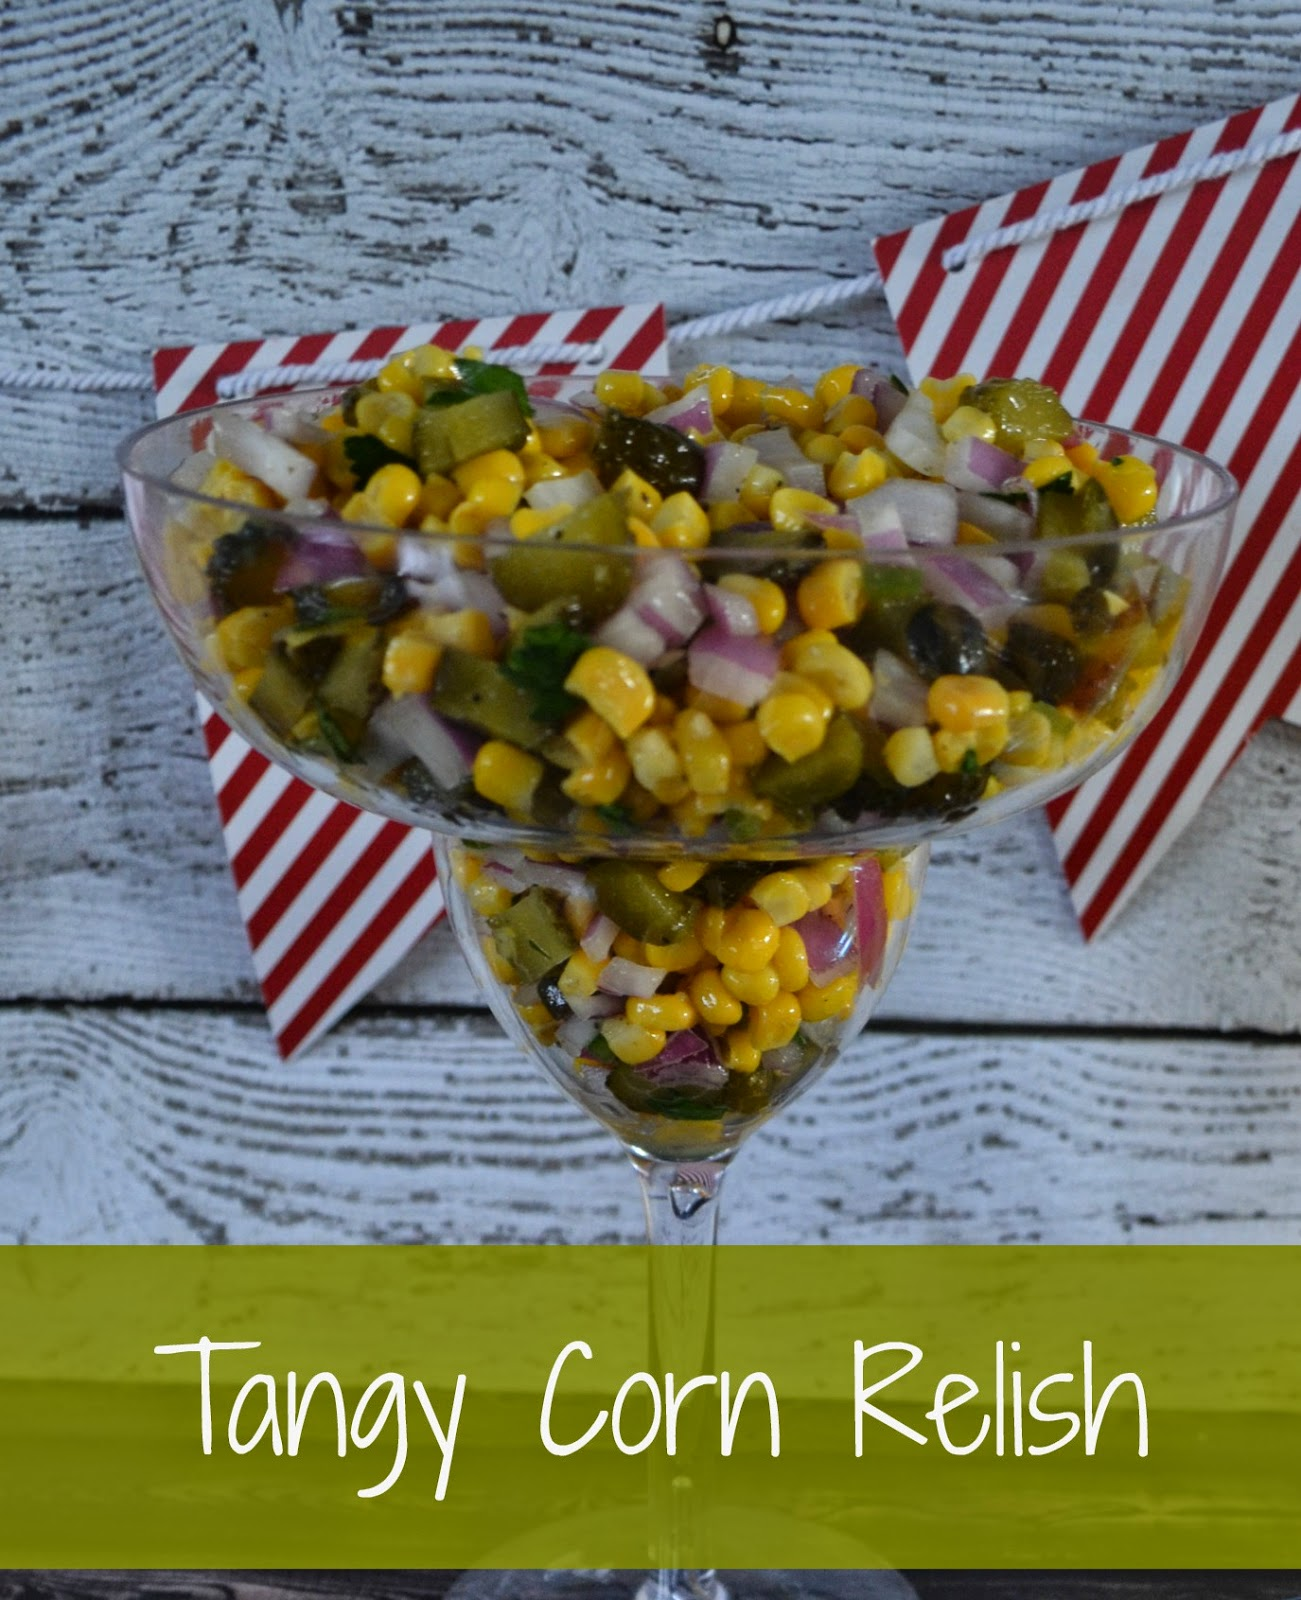 Tangy Corn Relish Recipe